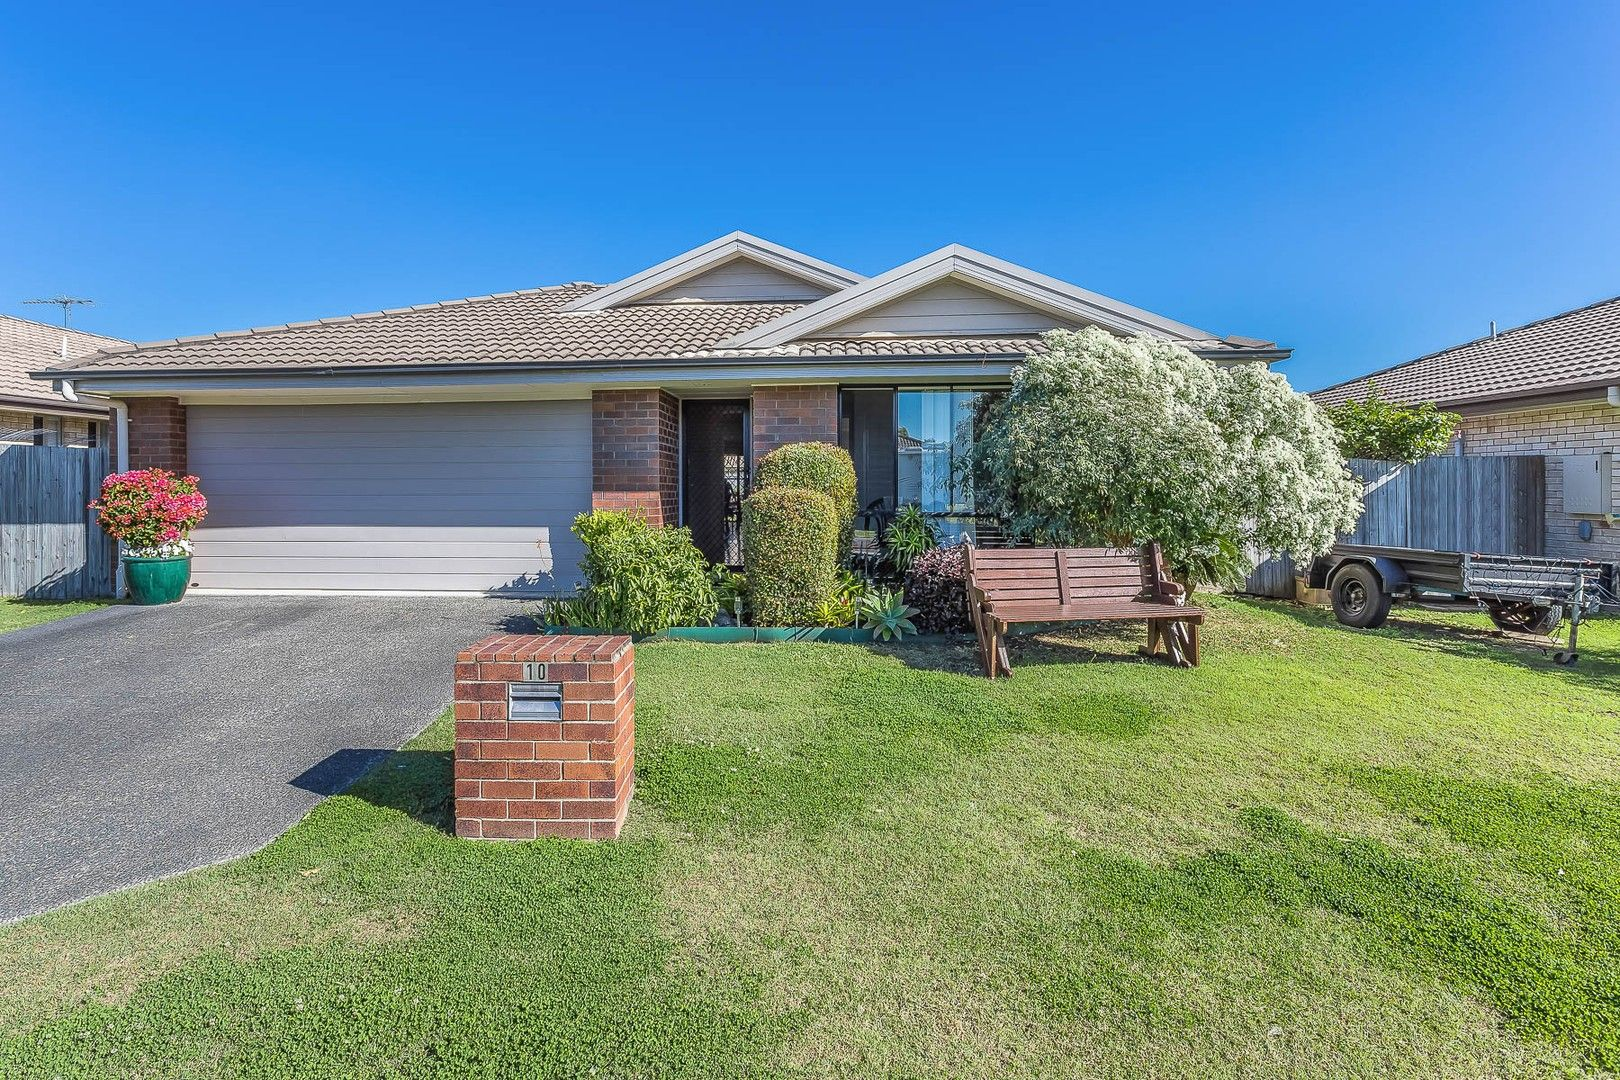 10 Rumba Street, Caboolture QLD 4510, Image 0